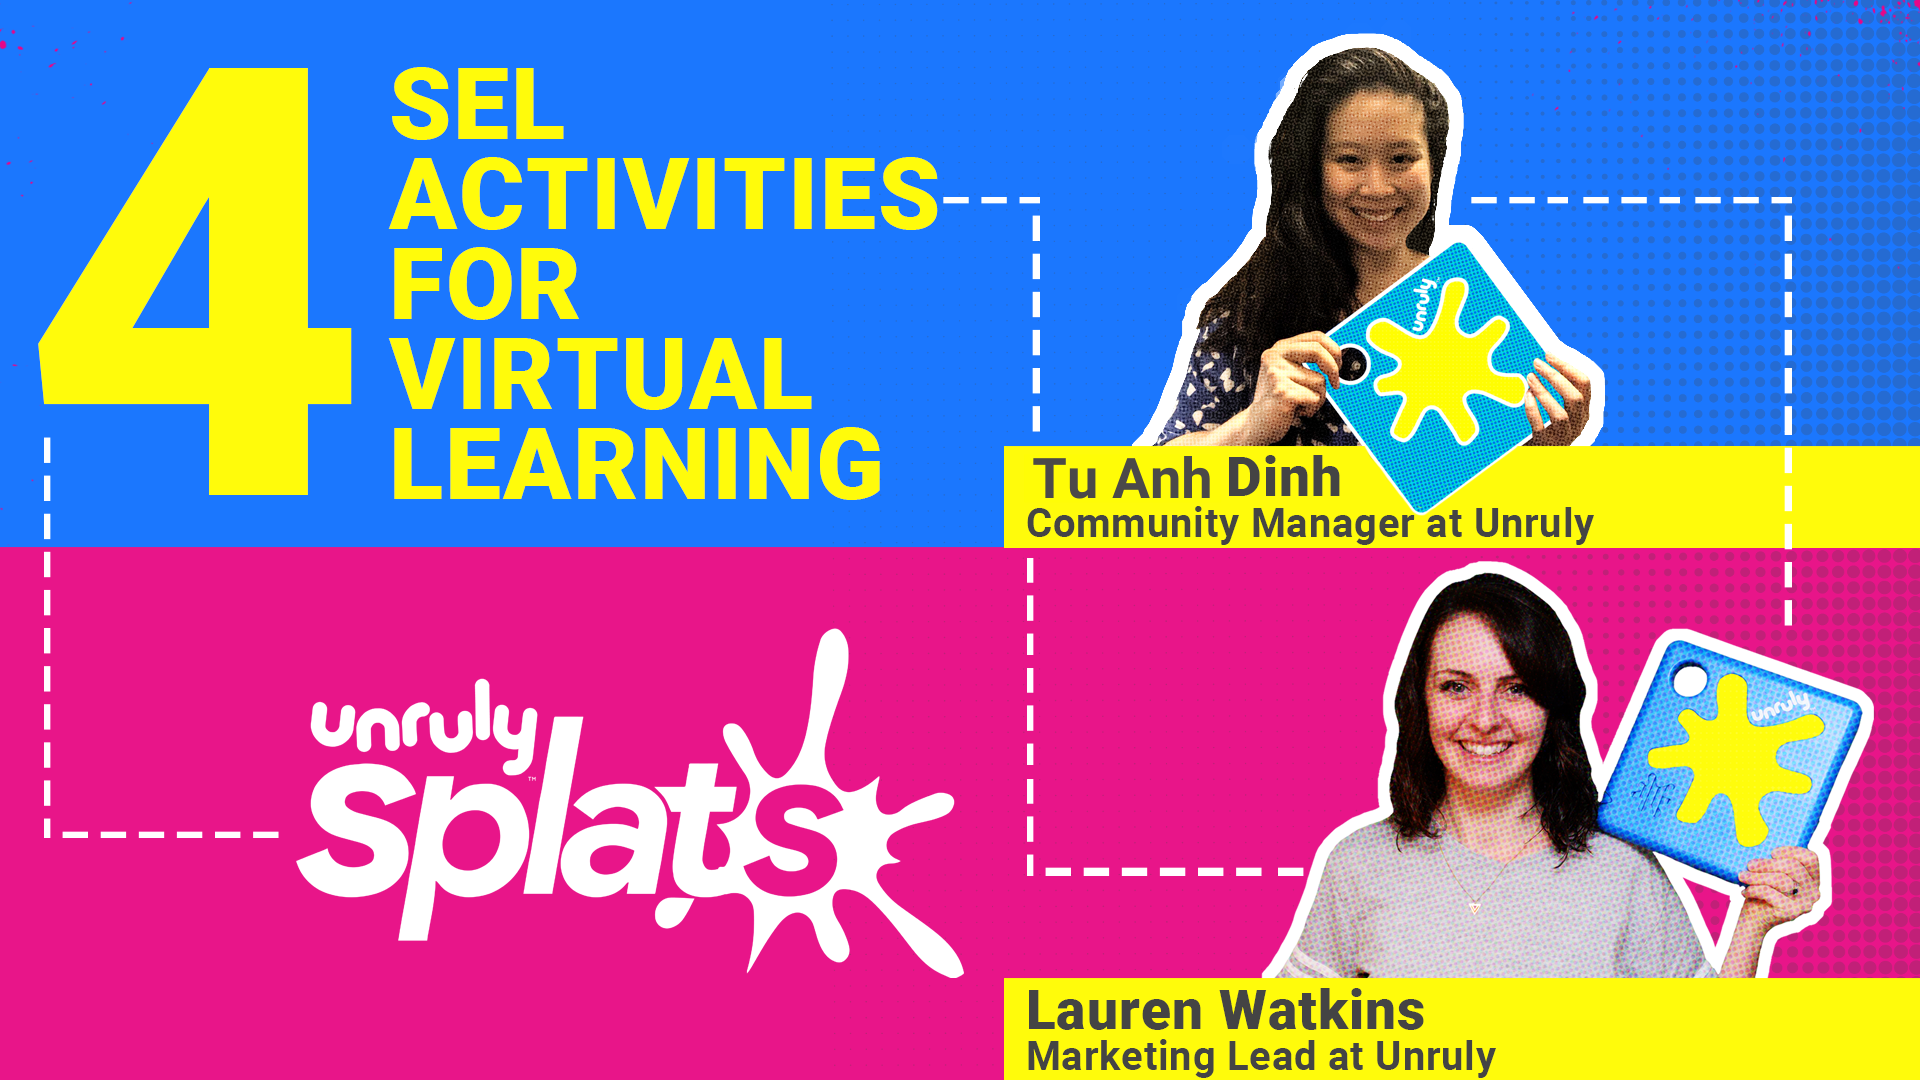 STEM Webinar - Unruly SEL Activities